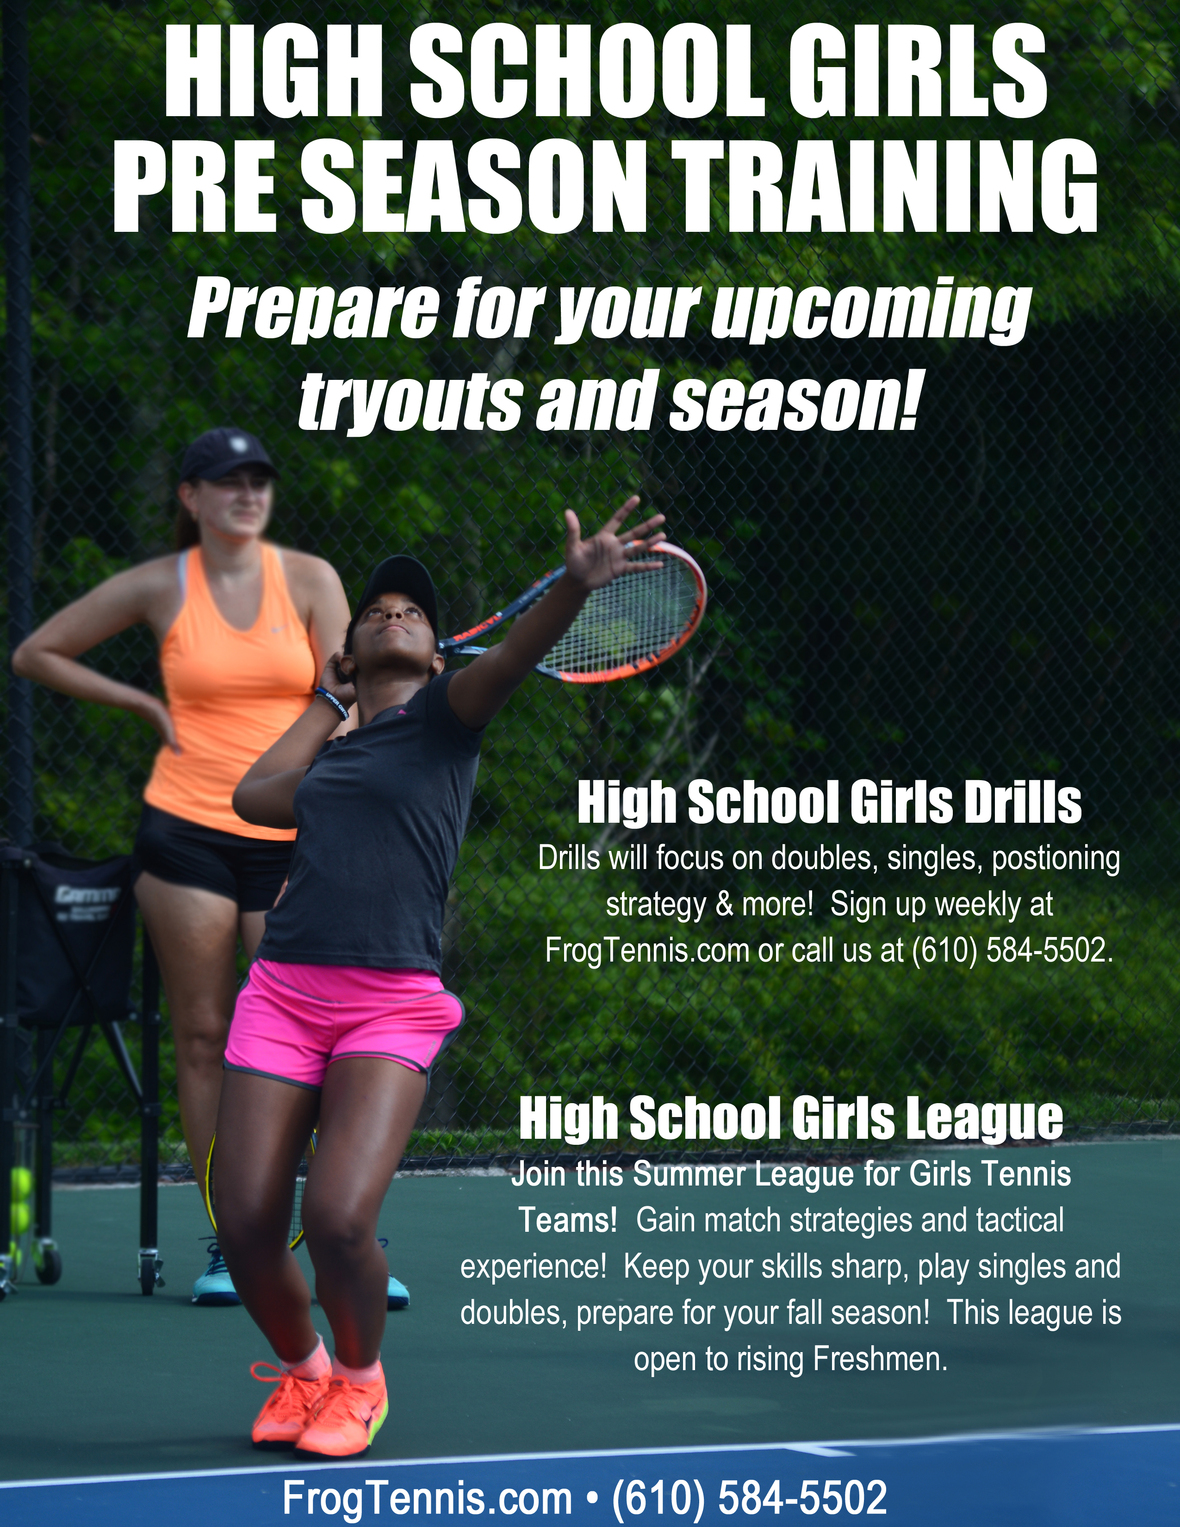 HS Girls Pre Season Training 2019